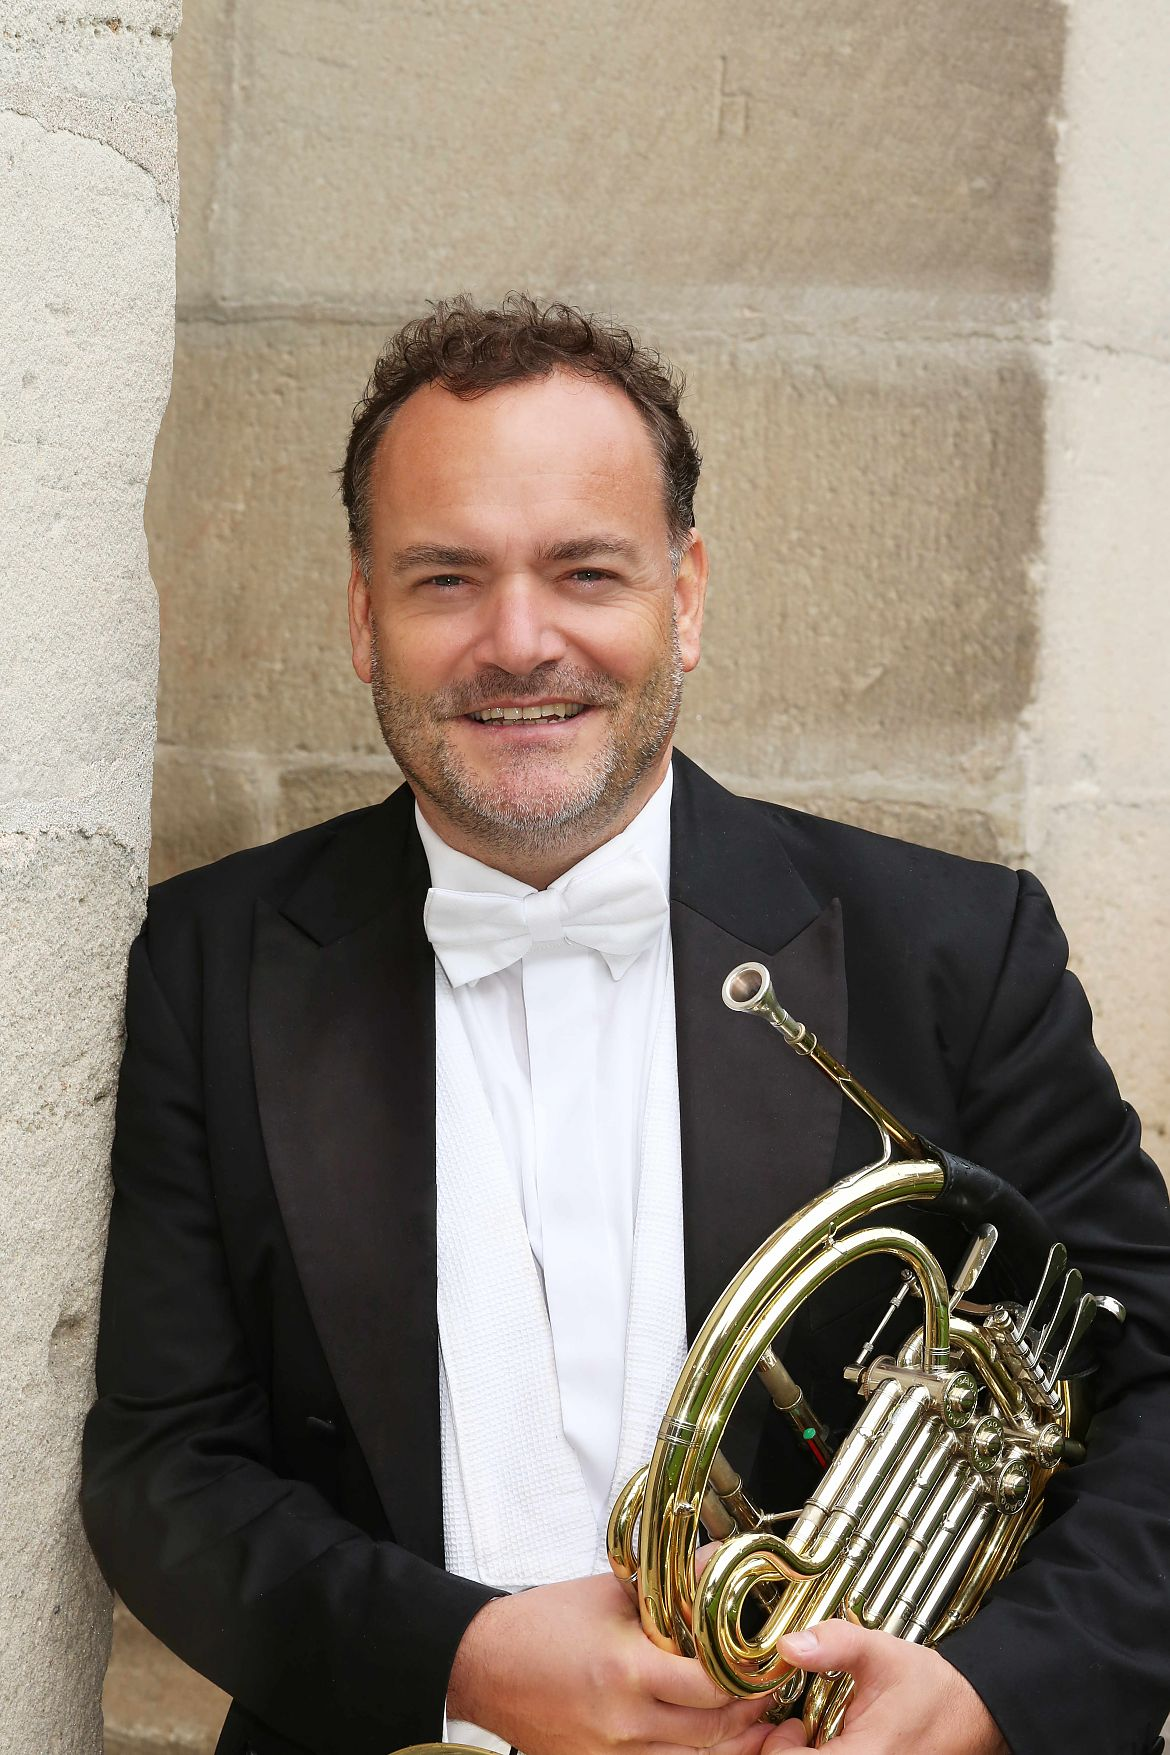 Andreas Binder, Horn